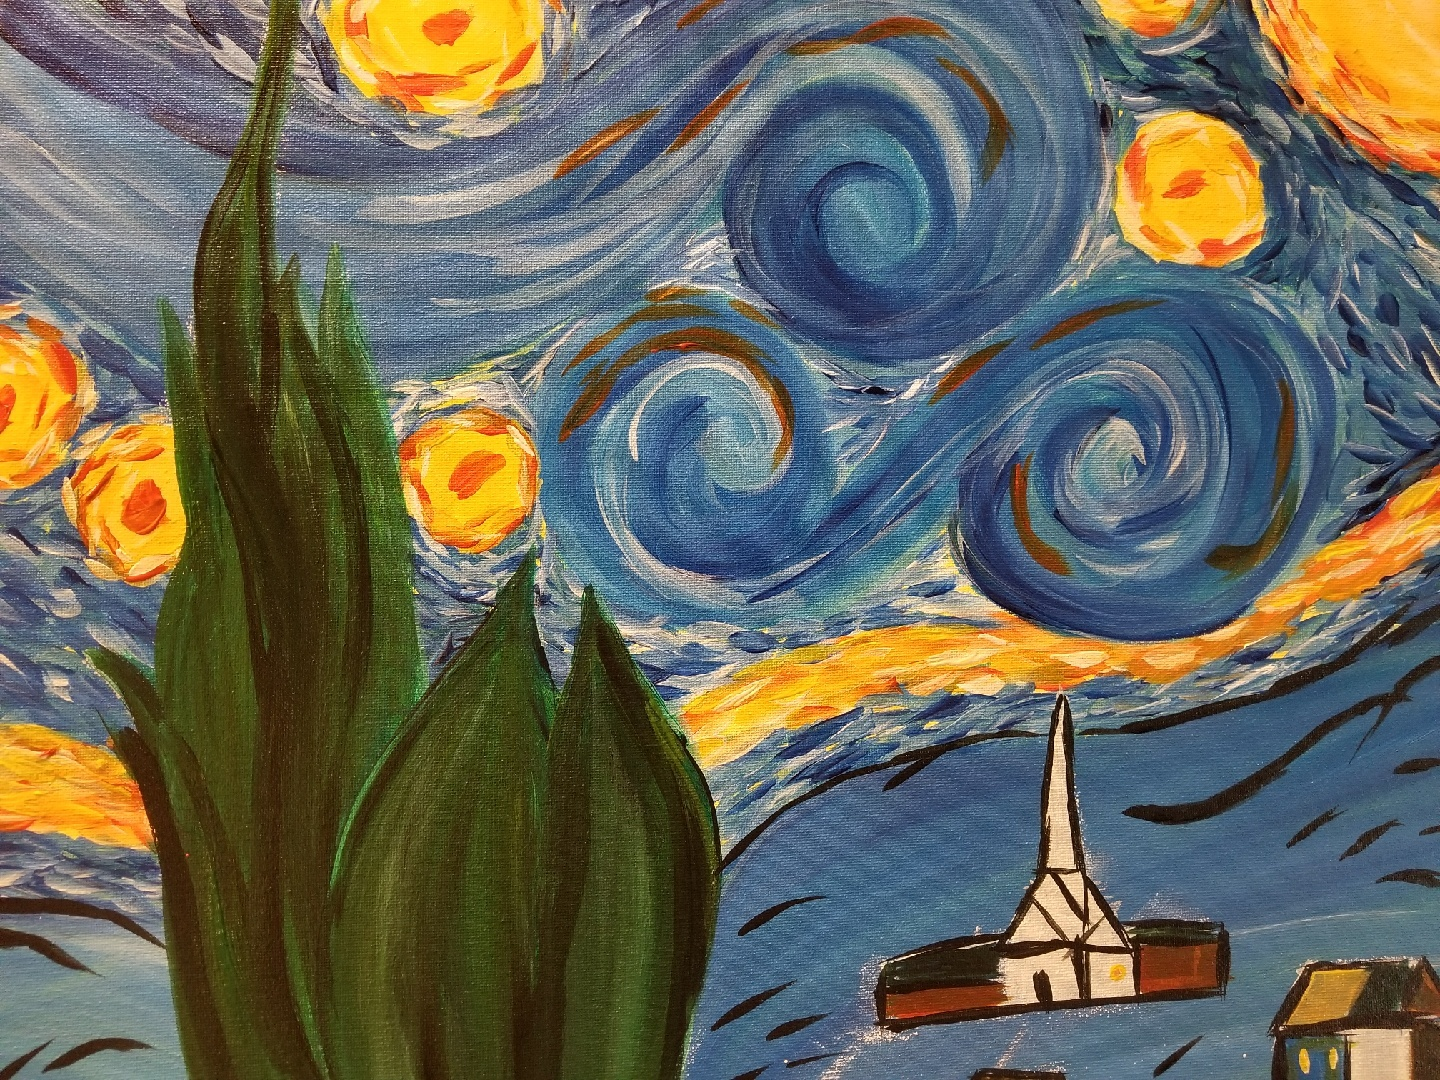 Van Gogh Inspired Night